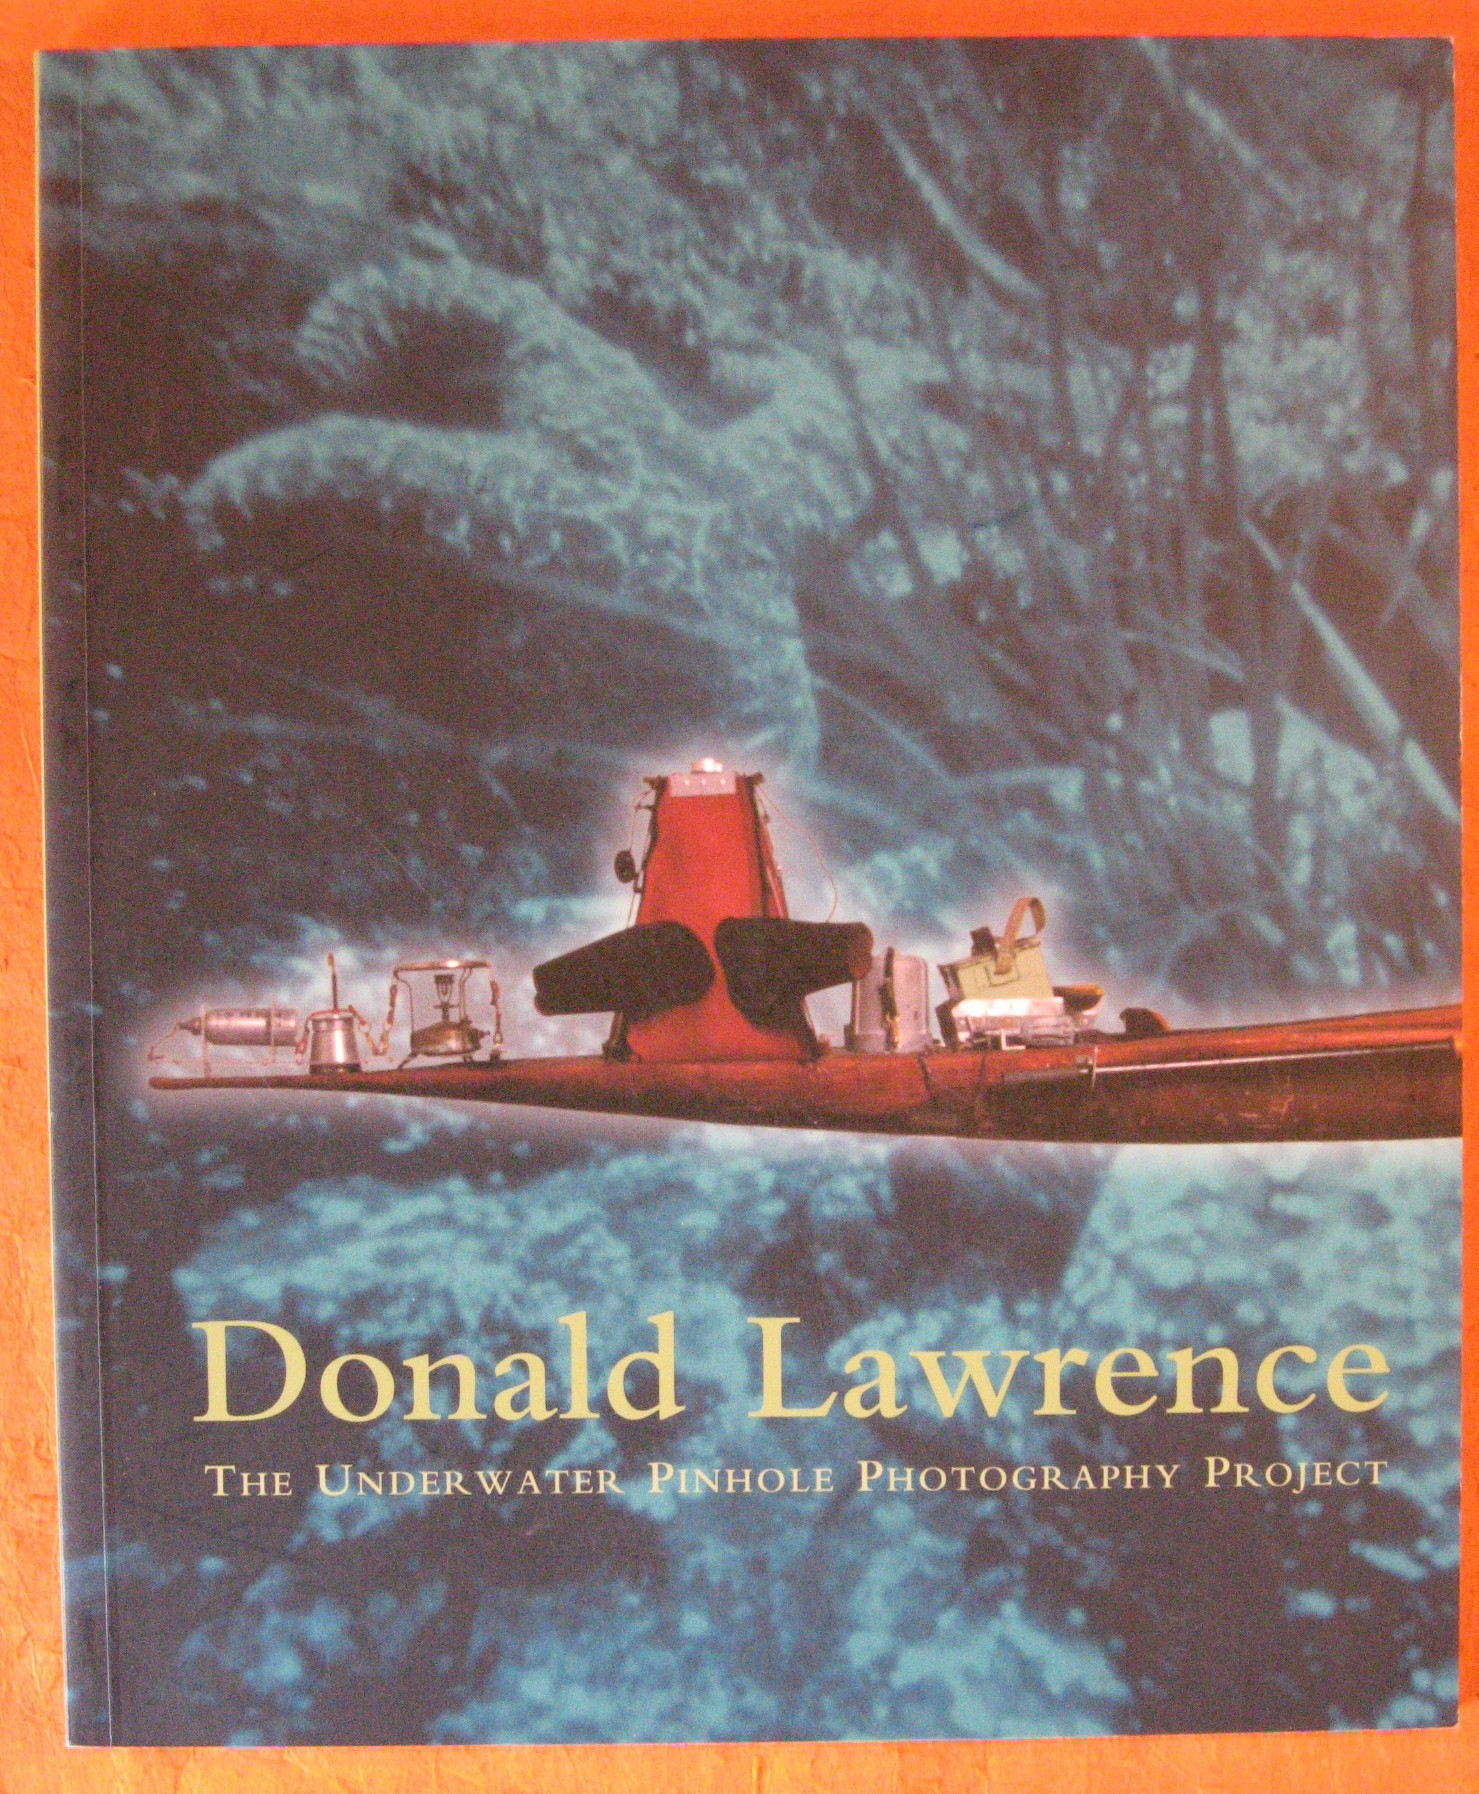 Donald Lawrence : The Underwater Pinhole Photography Project, McCormick, Katy; Lawrence, Donald